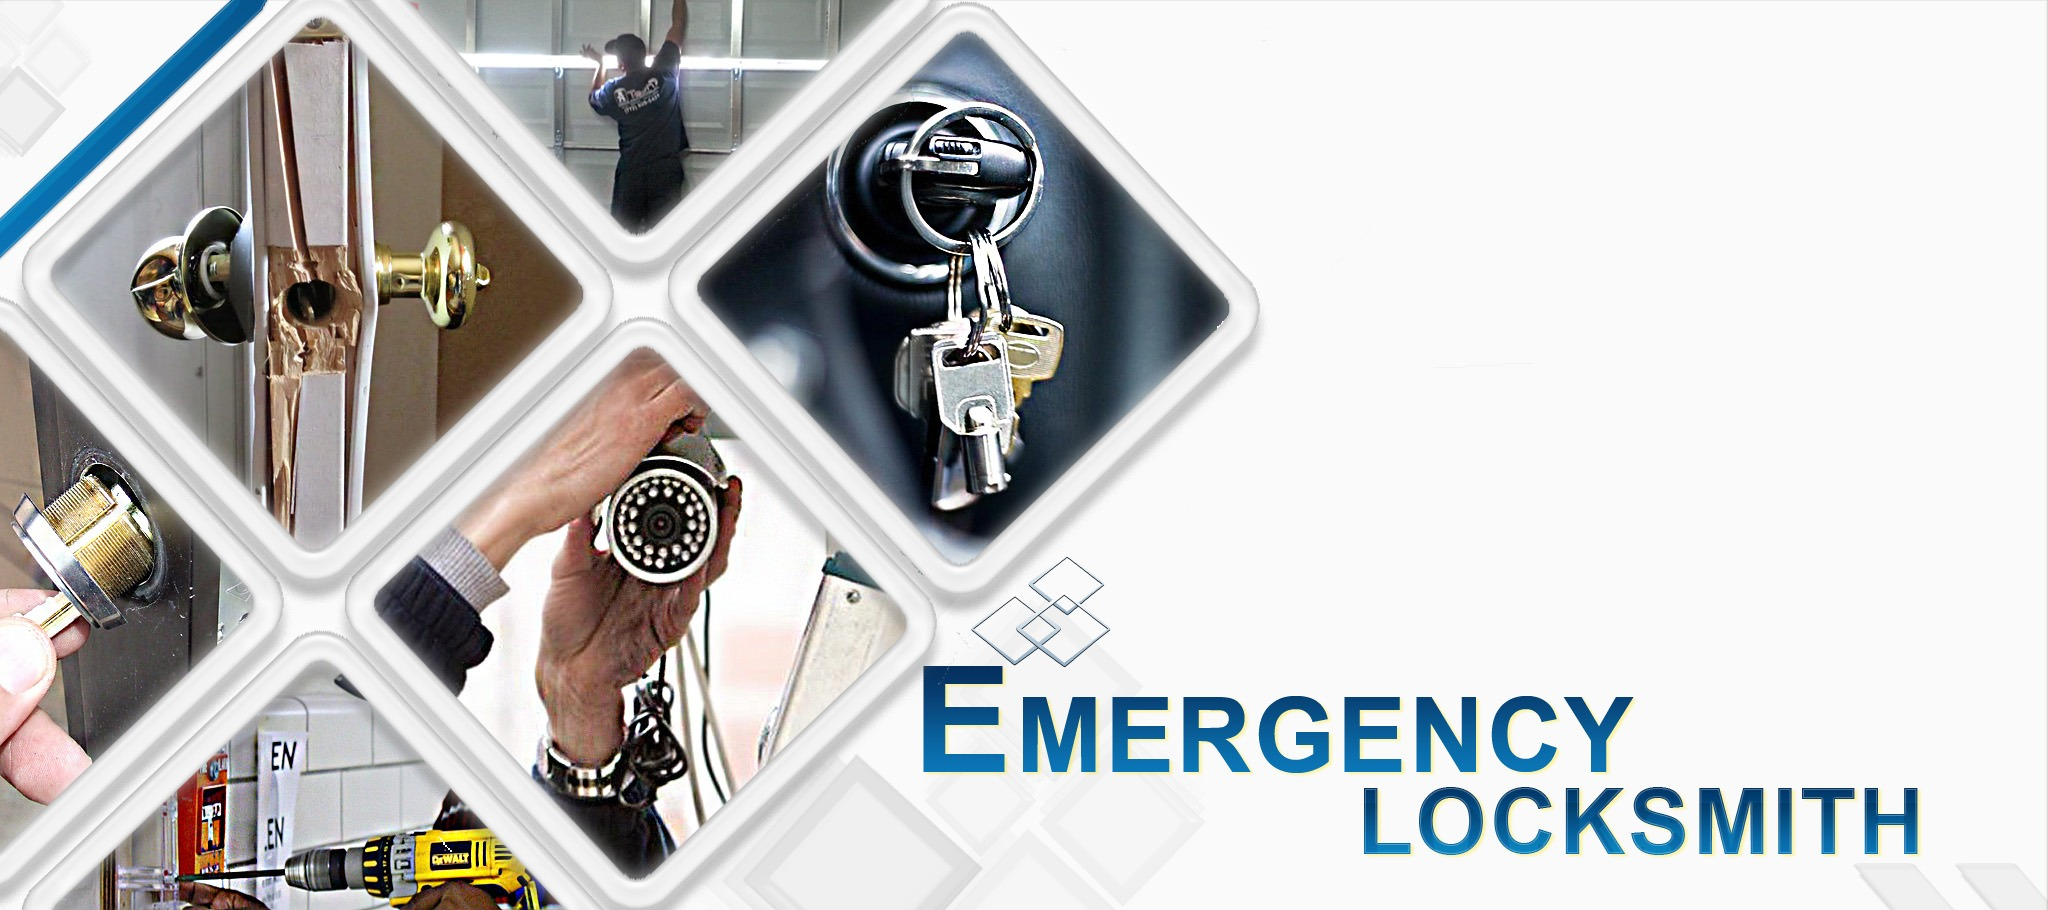 Emergency Locksmith Stafford VA, How to hire an Emergency Locksmith in 2020